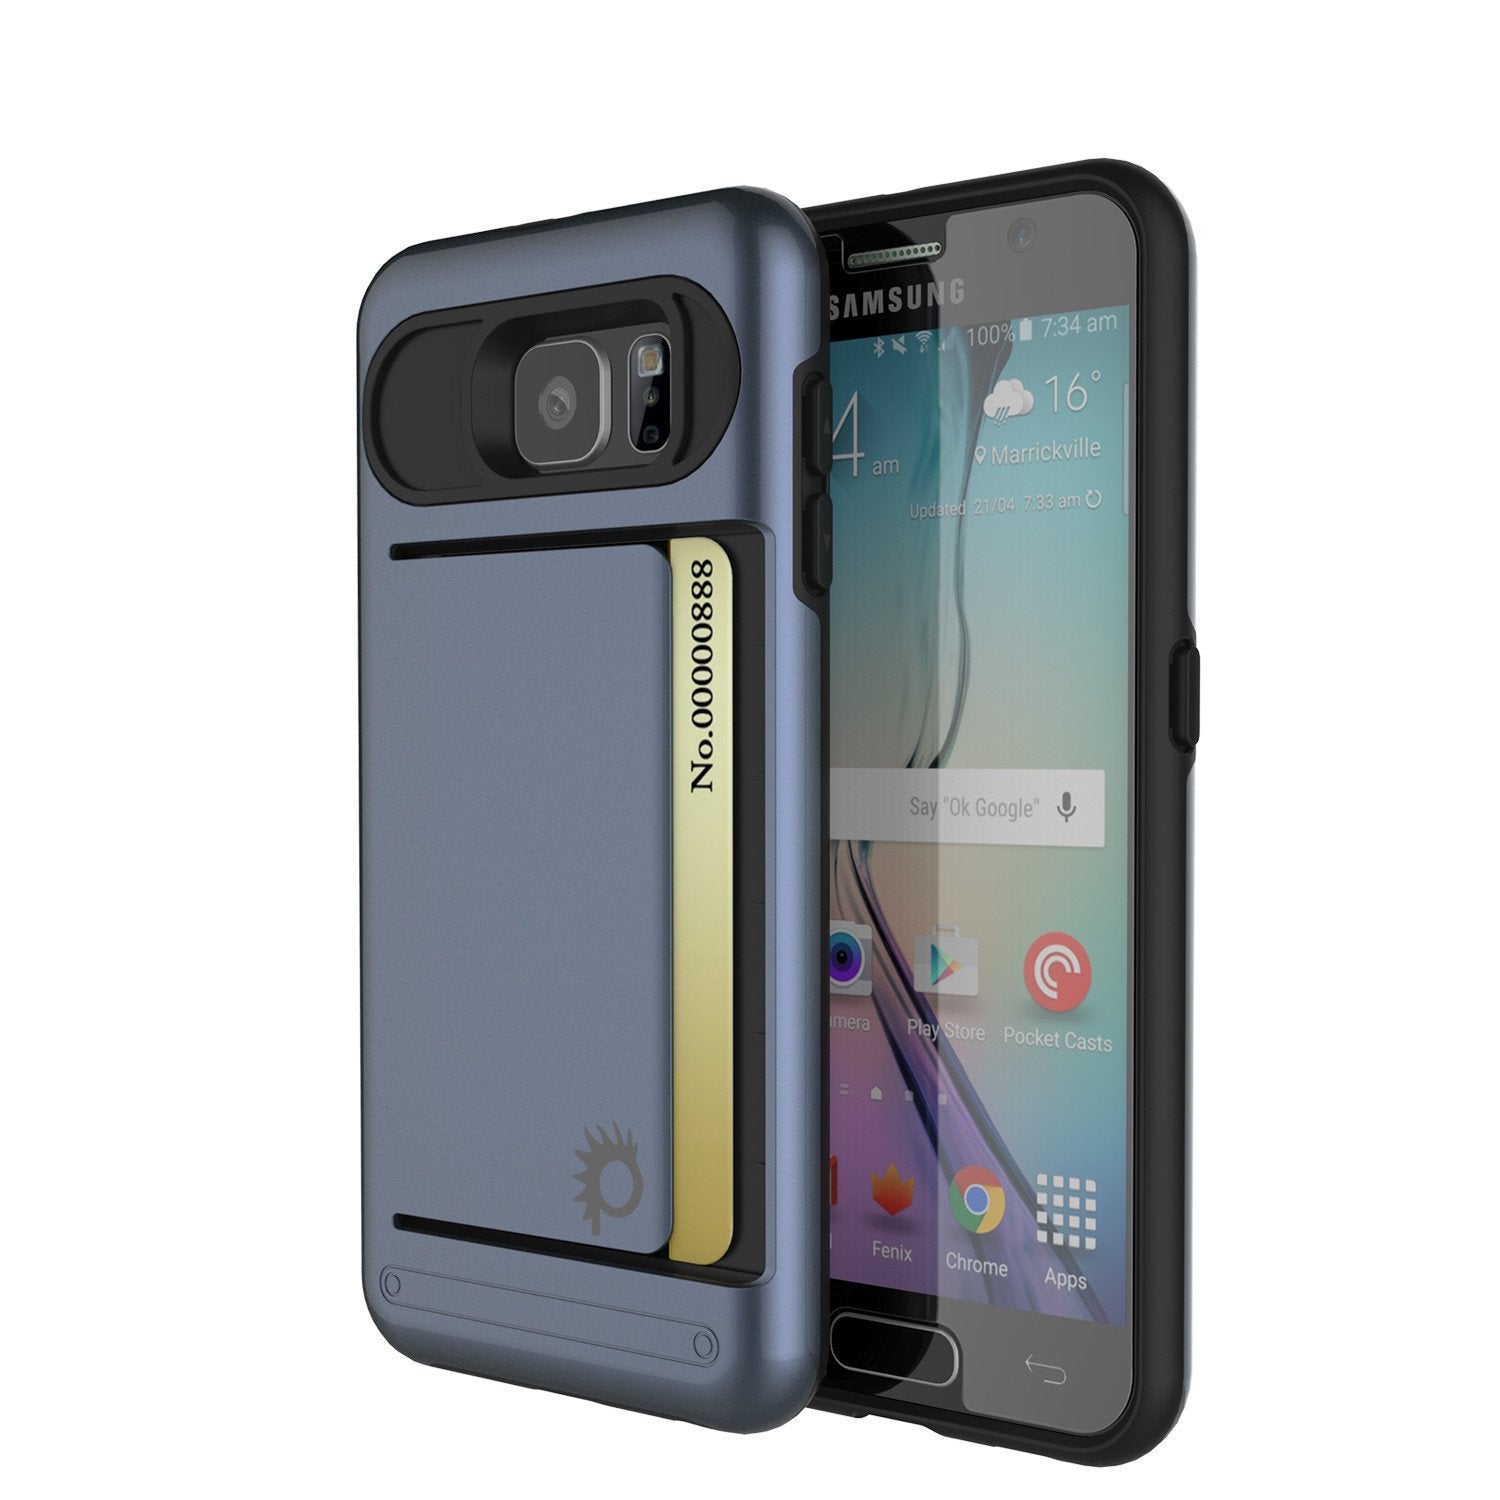 Galaxy S6 EDGE Case PunkCase CLUTCH Navy Series Slim Armor Soft Cover Case w/ Screen Protector - PunkCase NZ